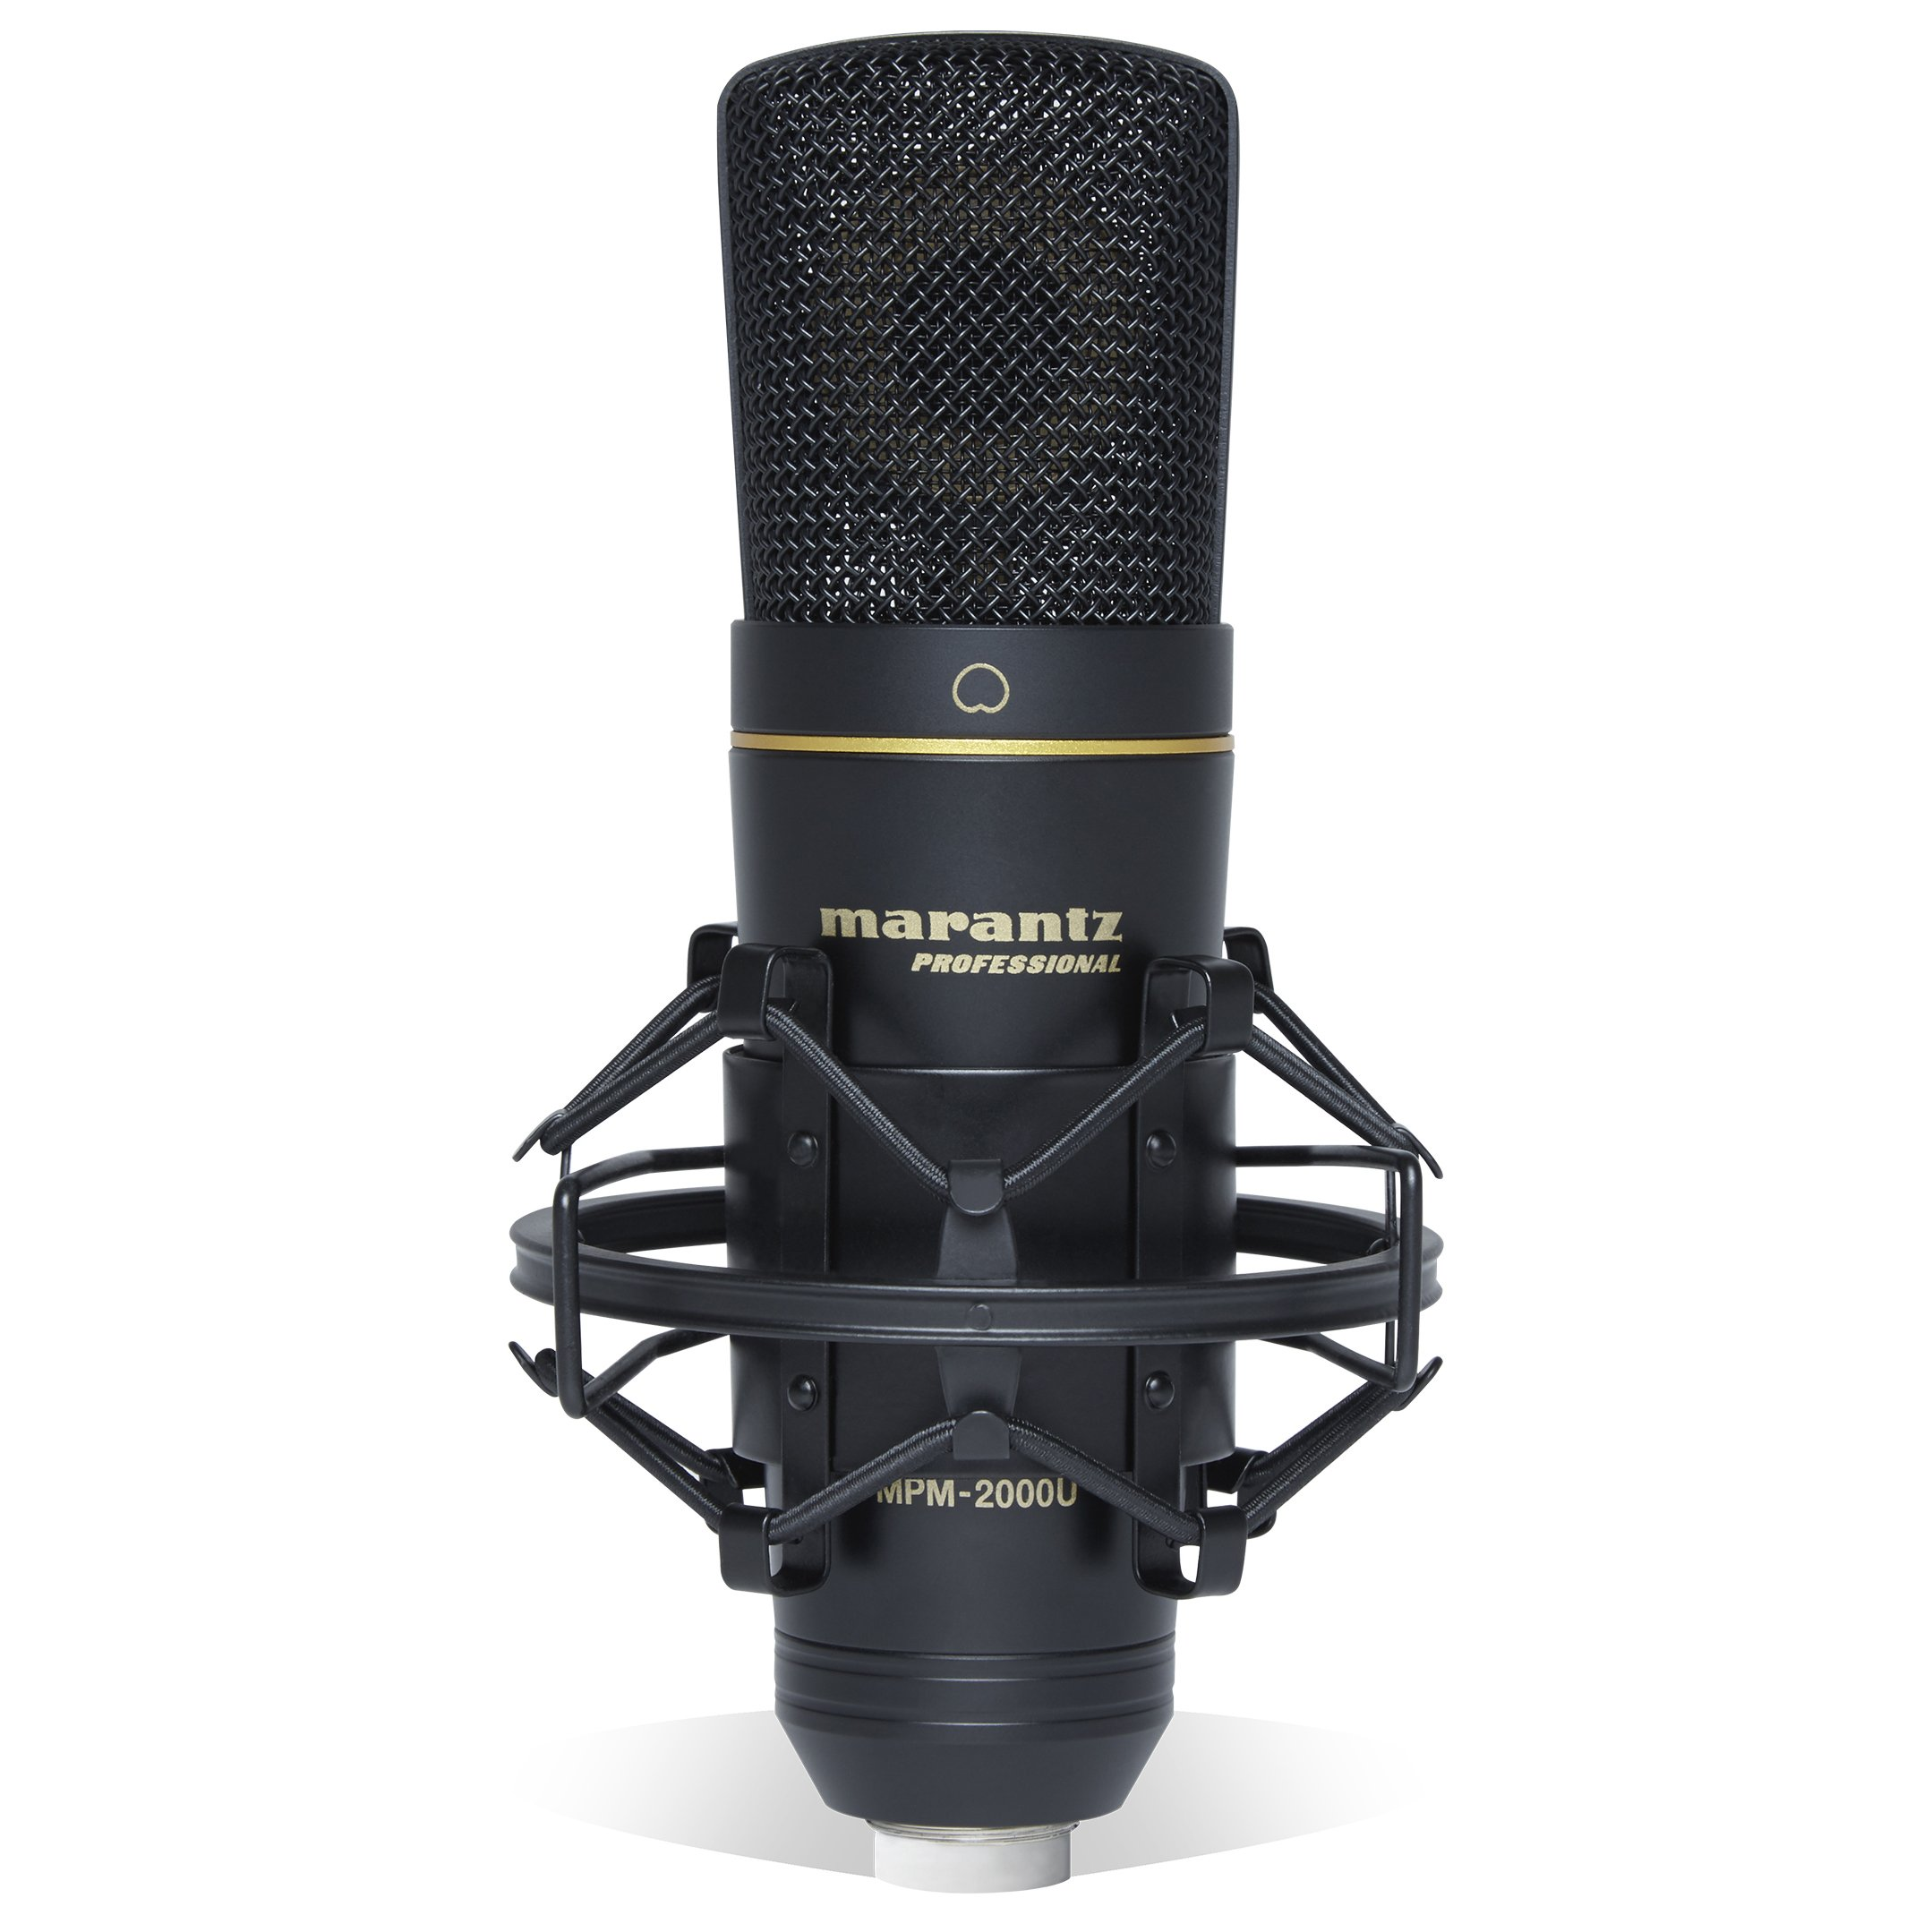 Marantz Professional MPM-2000U | Studio Condenser USB Microphone with Shock Mount, USB Cable & Carry Case (USB Out) by Marantz Professional